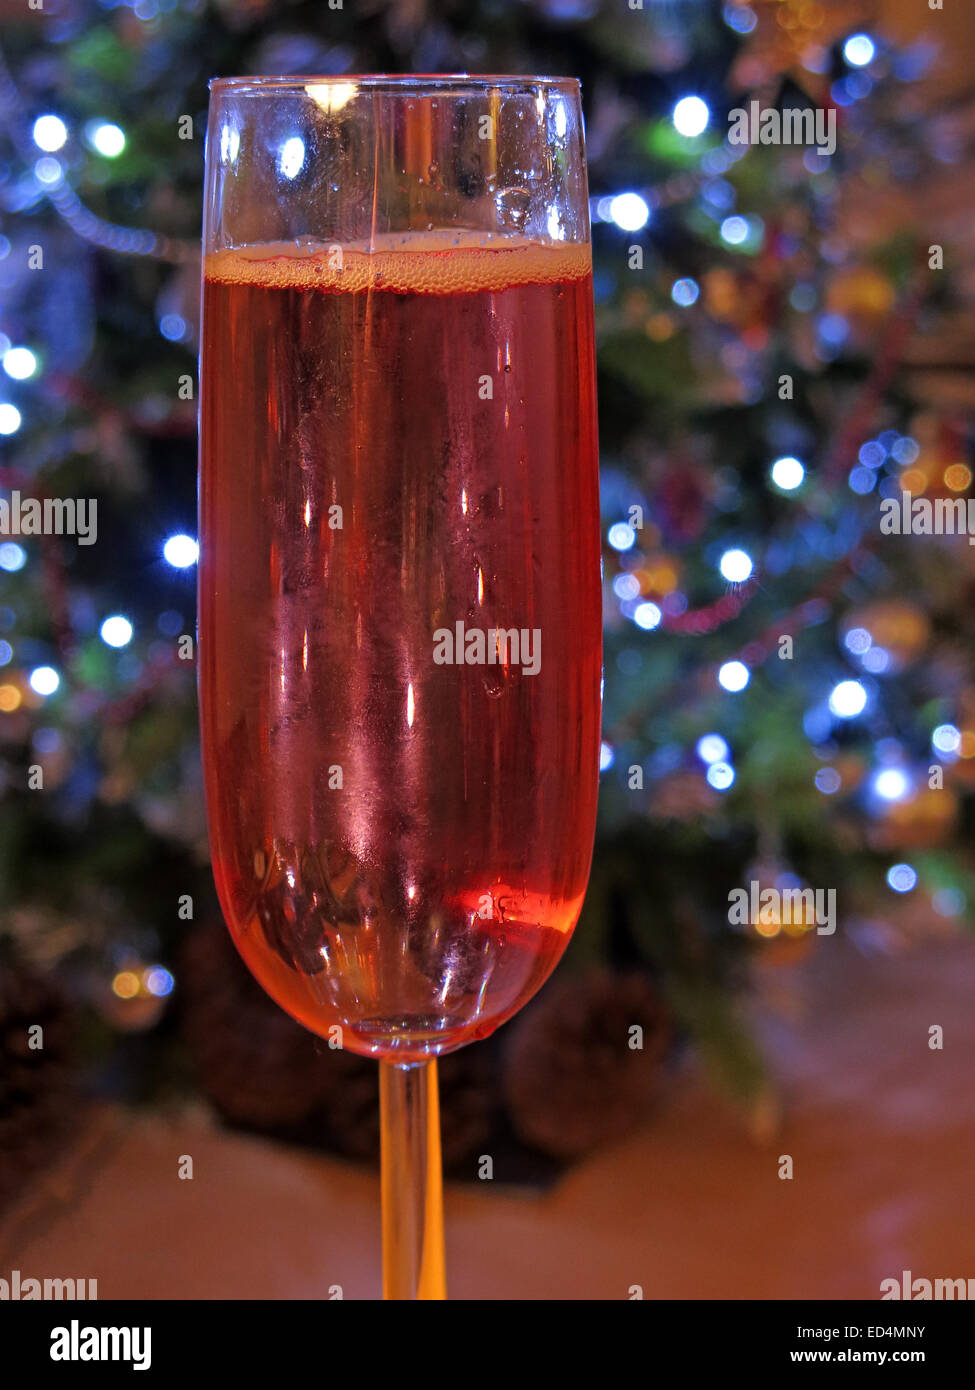 Xmas,glitter,white,red,rose,wine,at,Christmas,in,front,of,tree,of,decorations,alcohol,booze,boozing,dangerous,sclerosis,of,liver,cancer,anti-drink,driving,campaign,police,dont,drink,and,drive,get,behind,wheel,of,a,car,vehicle,glitter,offences,offence,horrible,hangover,hangovers,health,hazards,Gotonysmith,2015,2016,2017,2018,2019,2020,2021,full,glass,of,fizz,abuse,full,glass,of,fizz